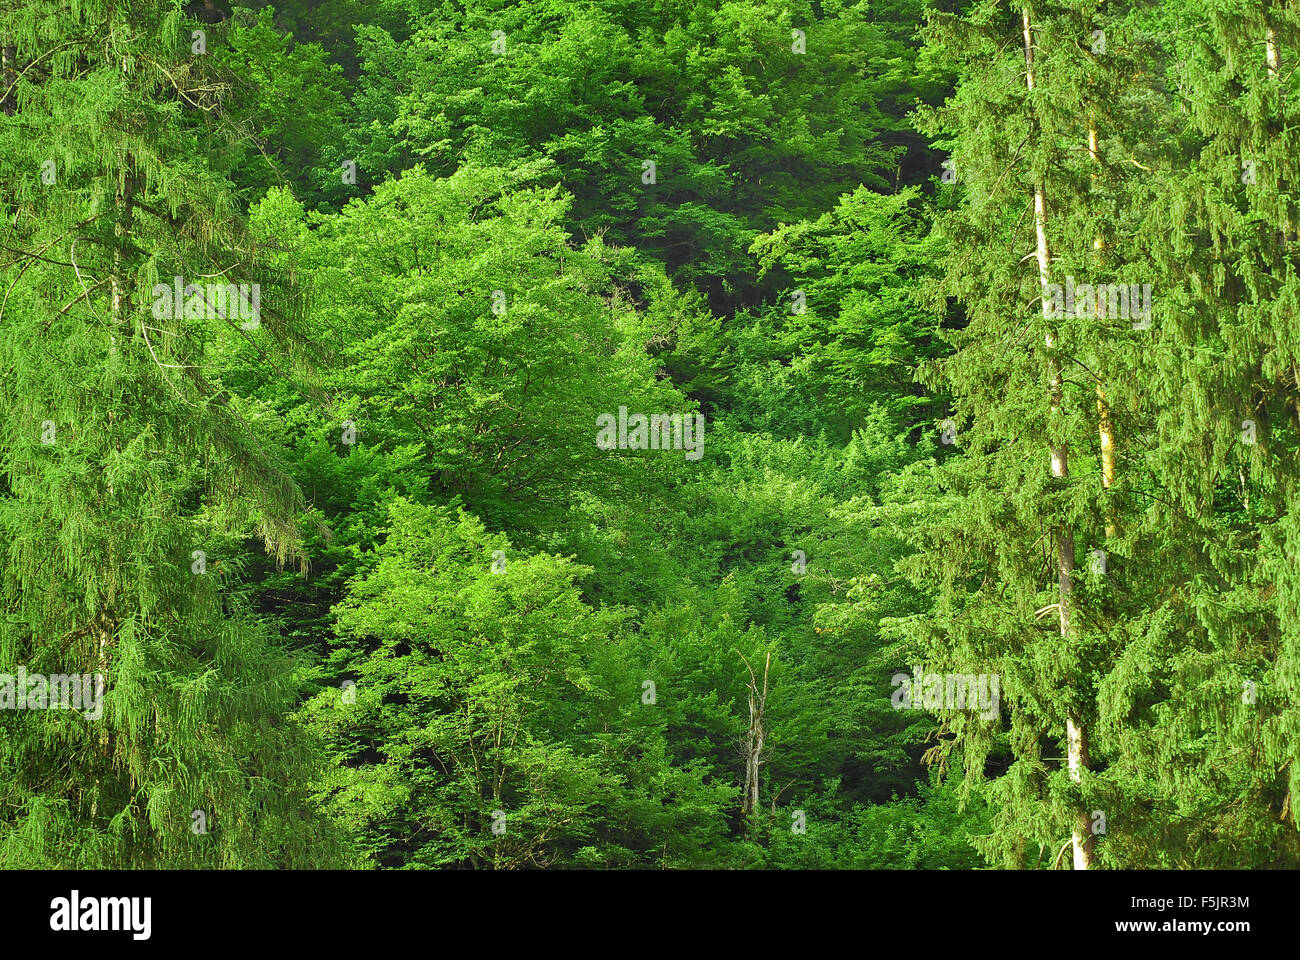 green forest canopy - Stock Image